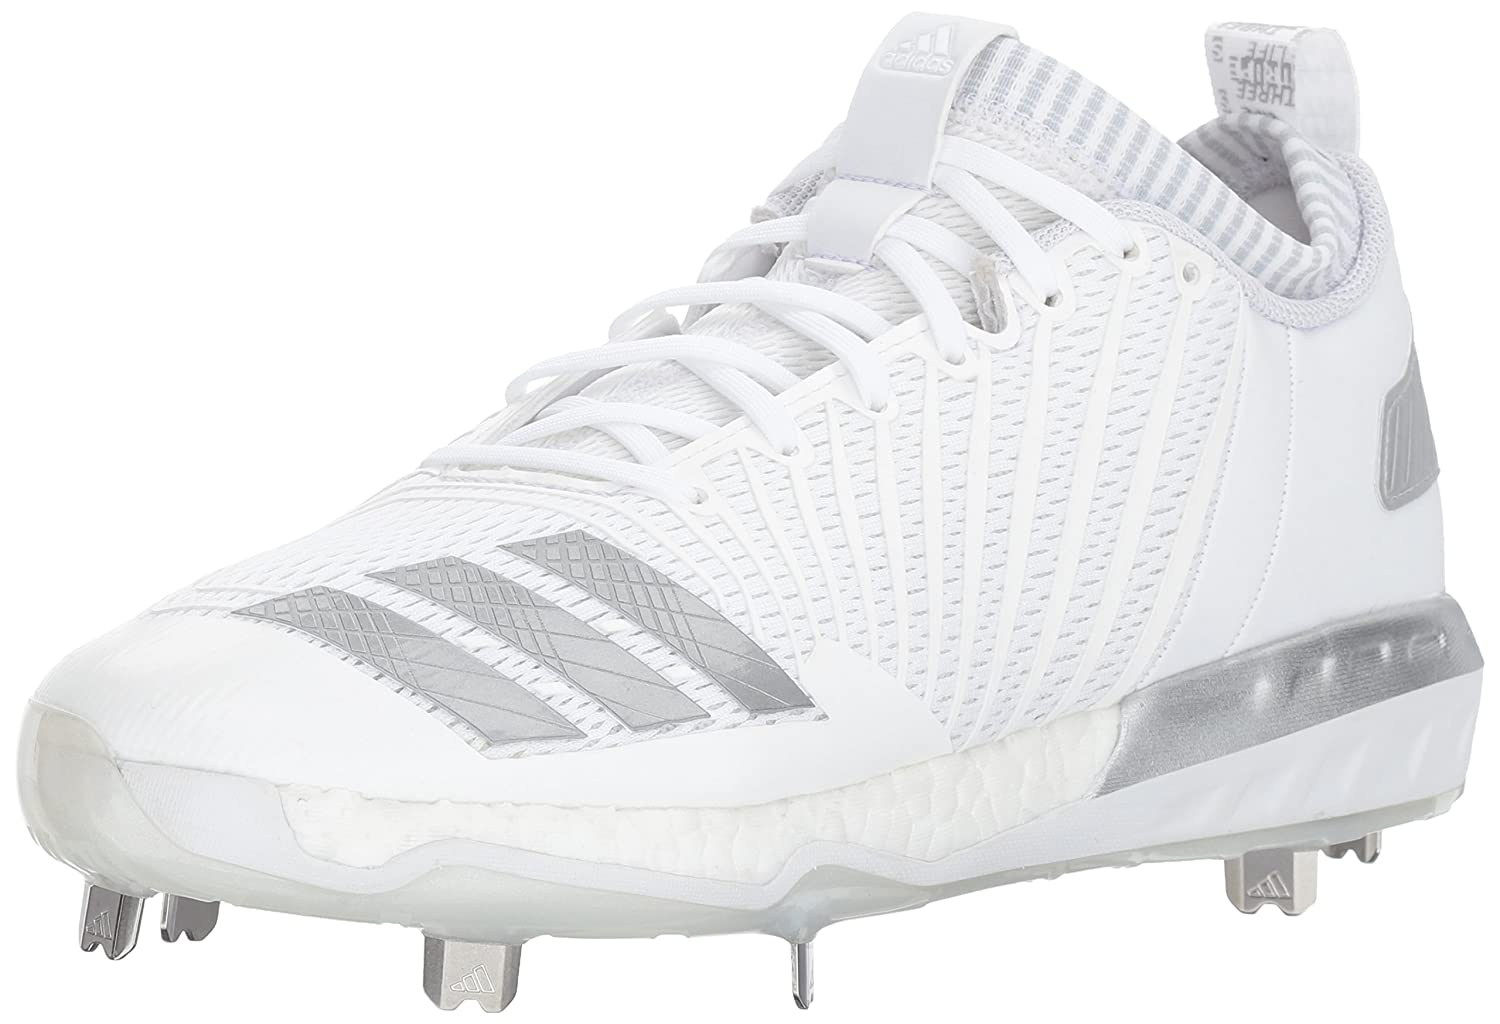 df803605f874 adidas Energy Boost Icon 3.0 Cleat - Men's Baseball ... adidas boost  baseball cleats